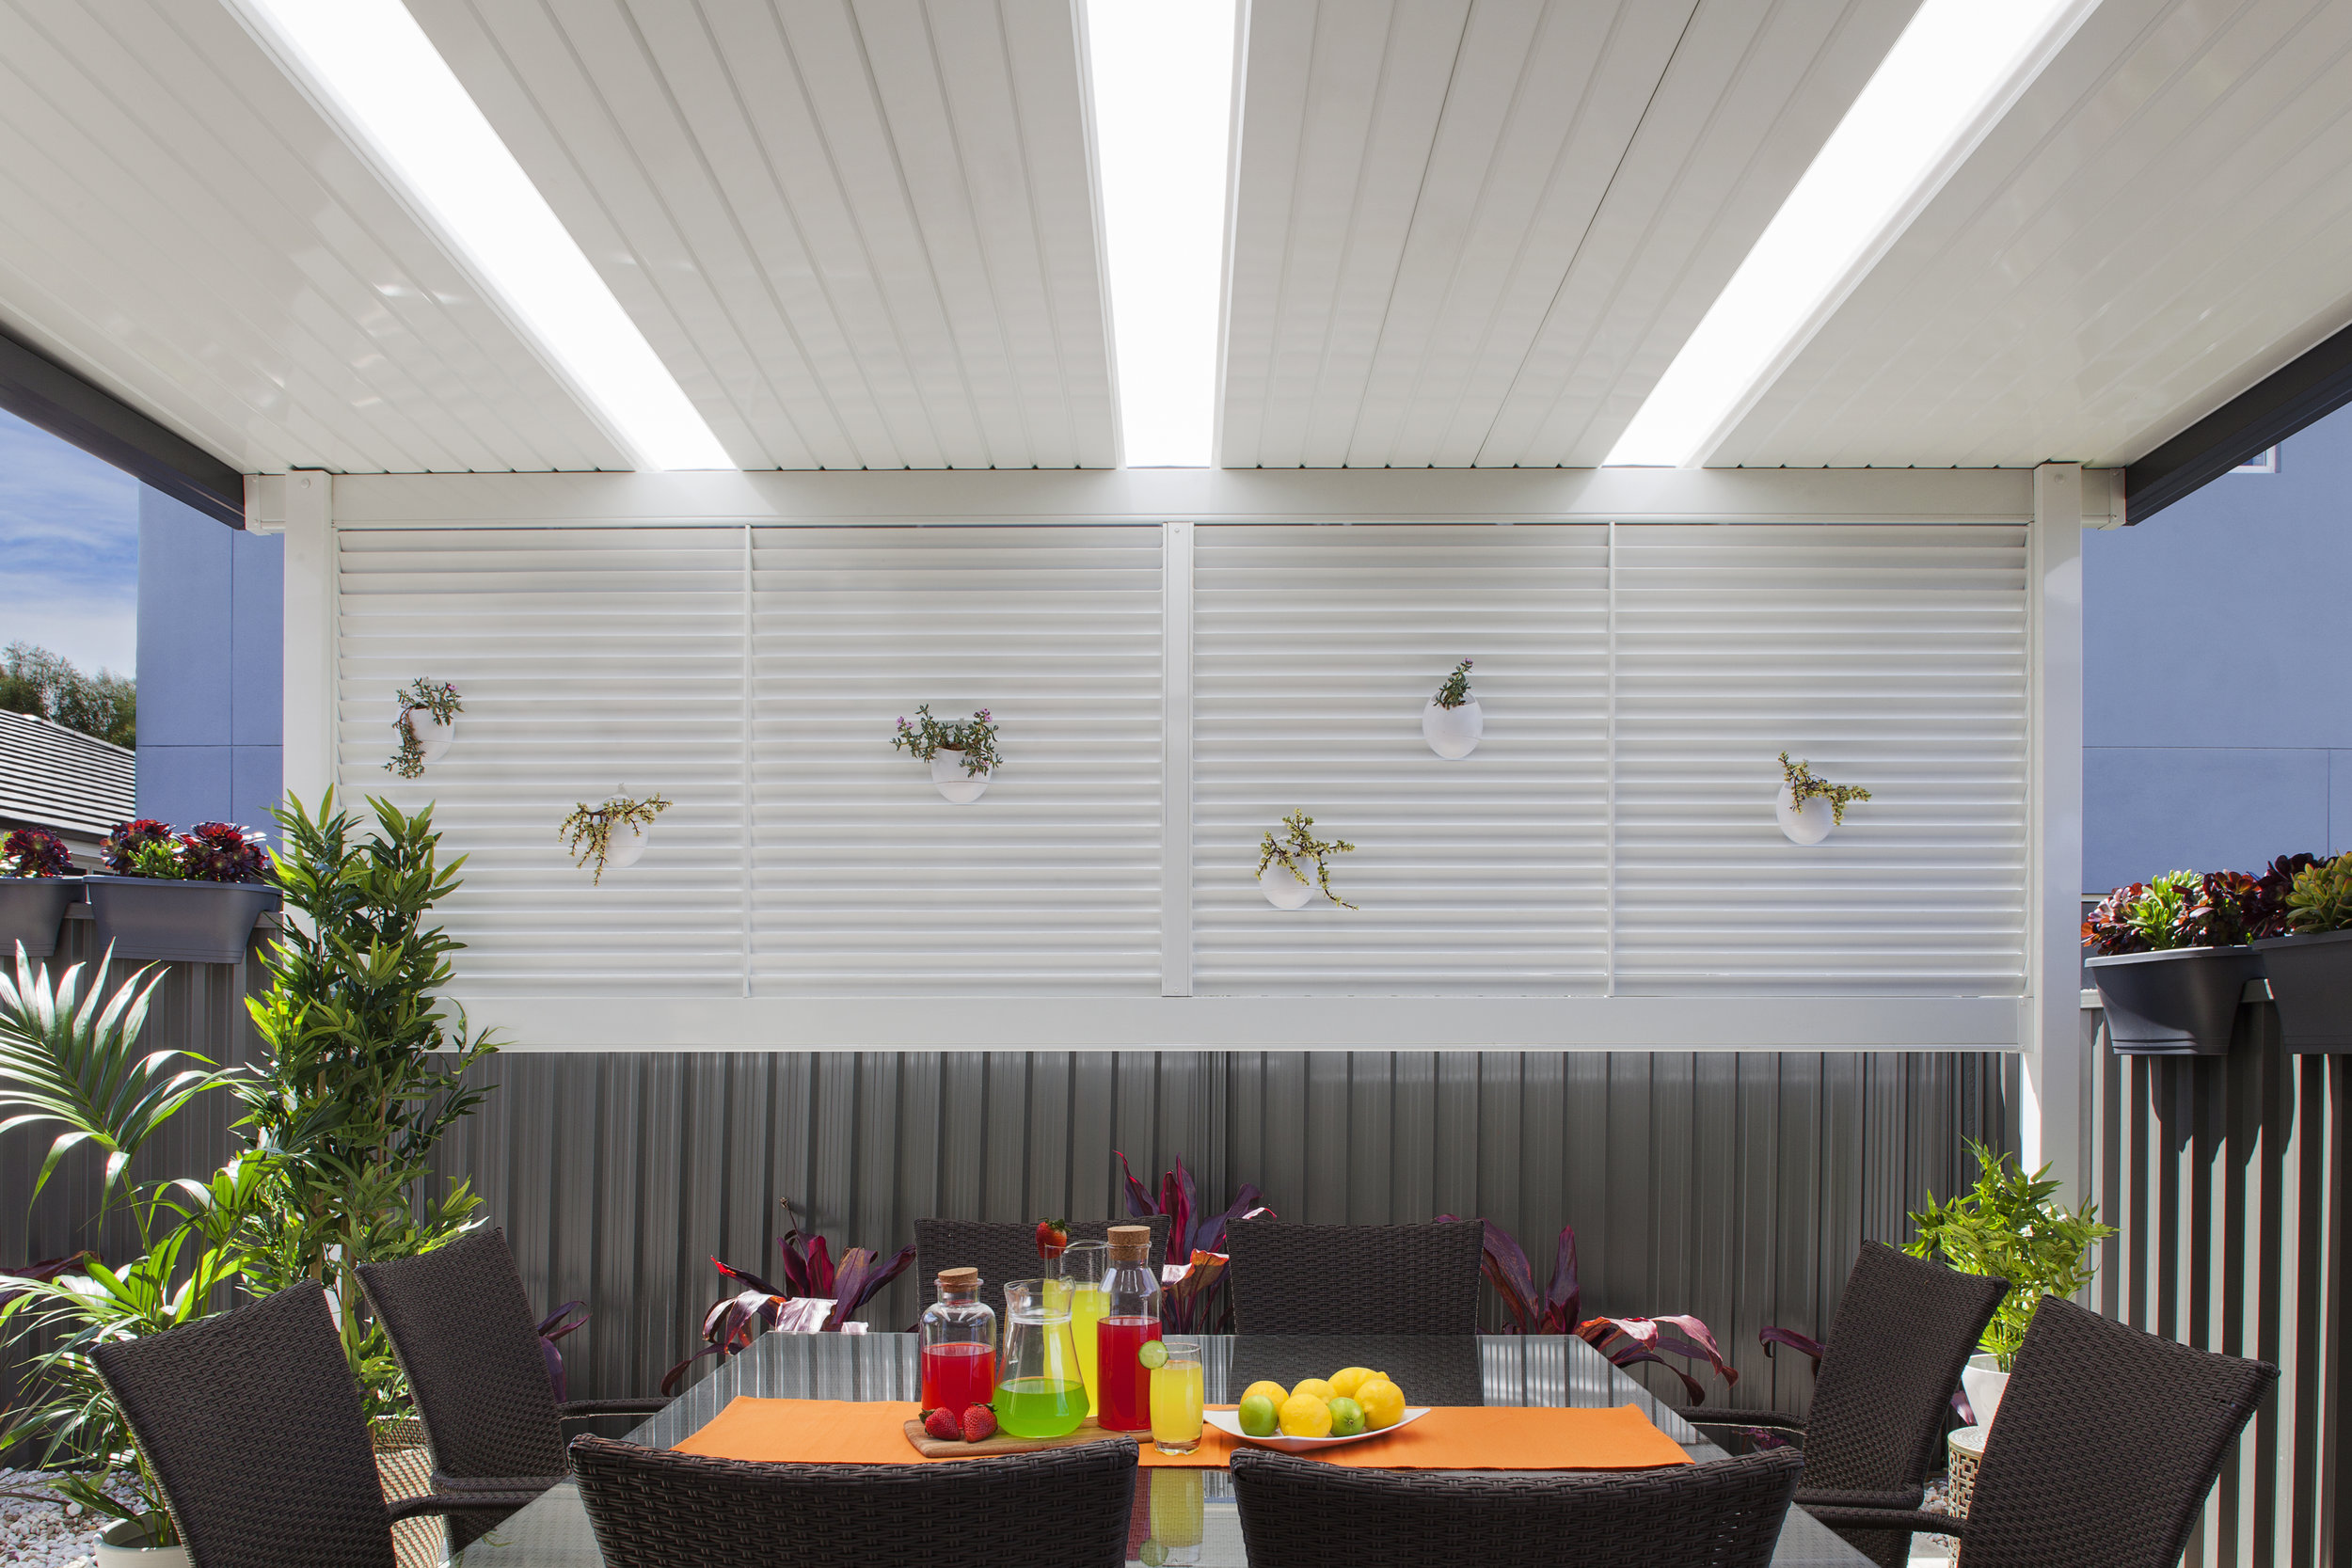 Privacy Screens - Add a little privacy to your entertaining space.